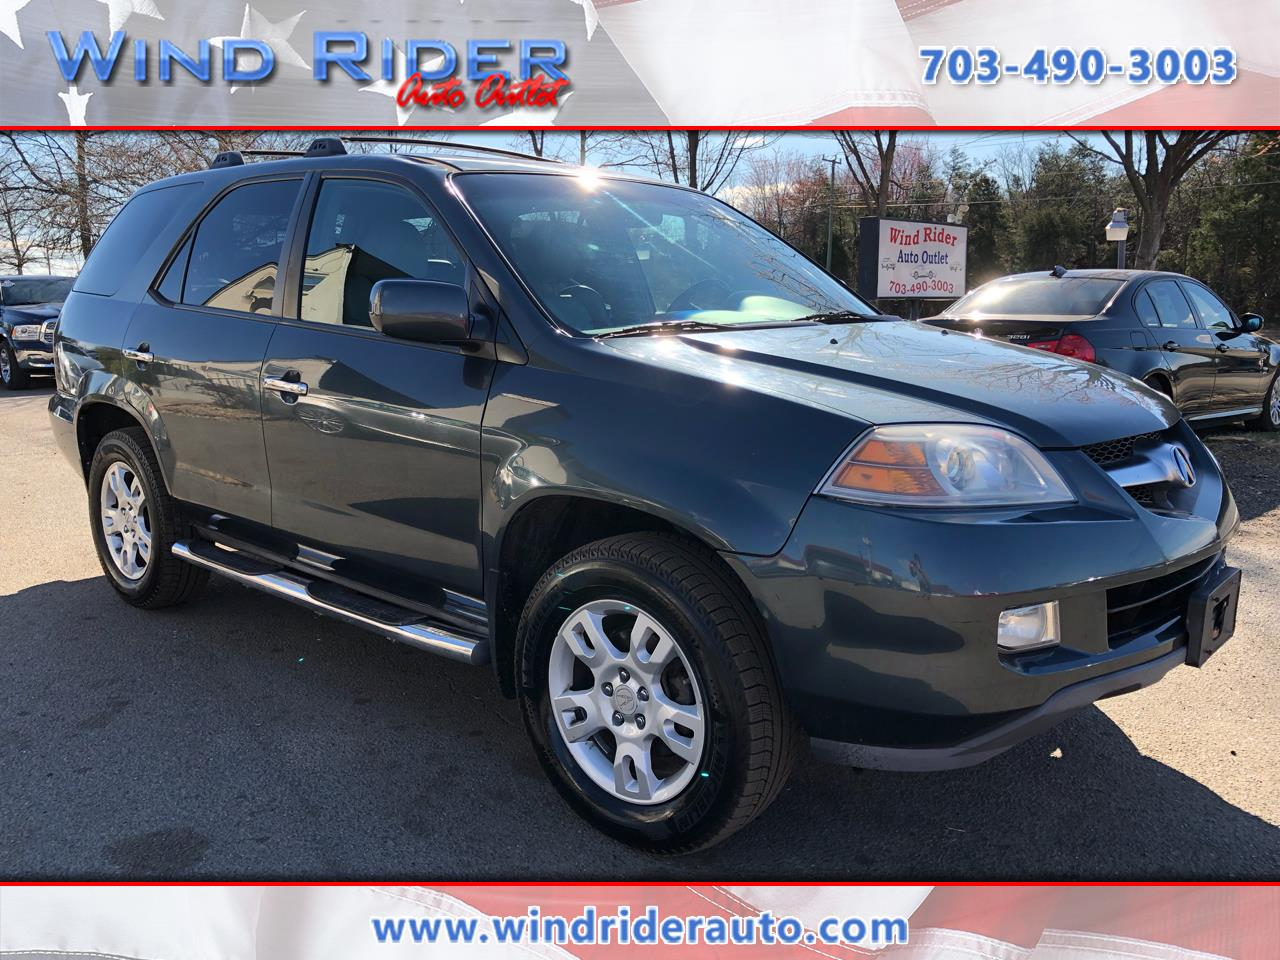 2005 Acura MDX Touring with Rear DVD System